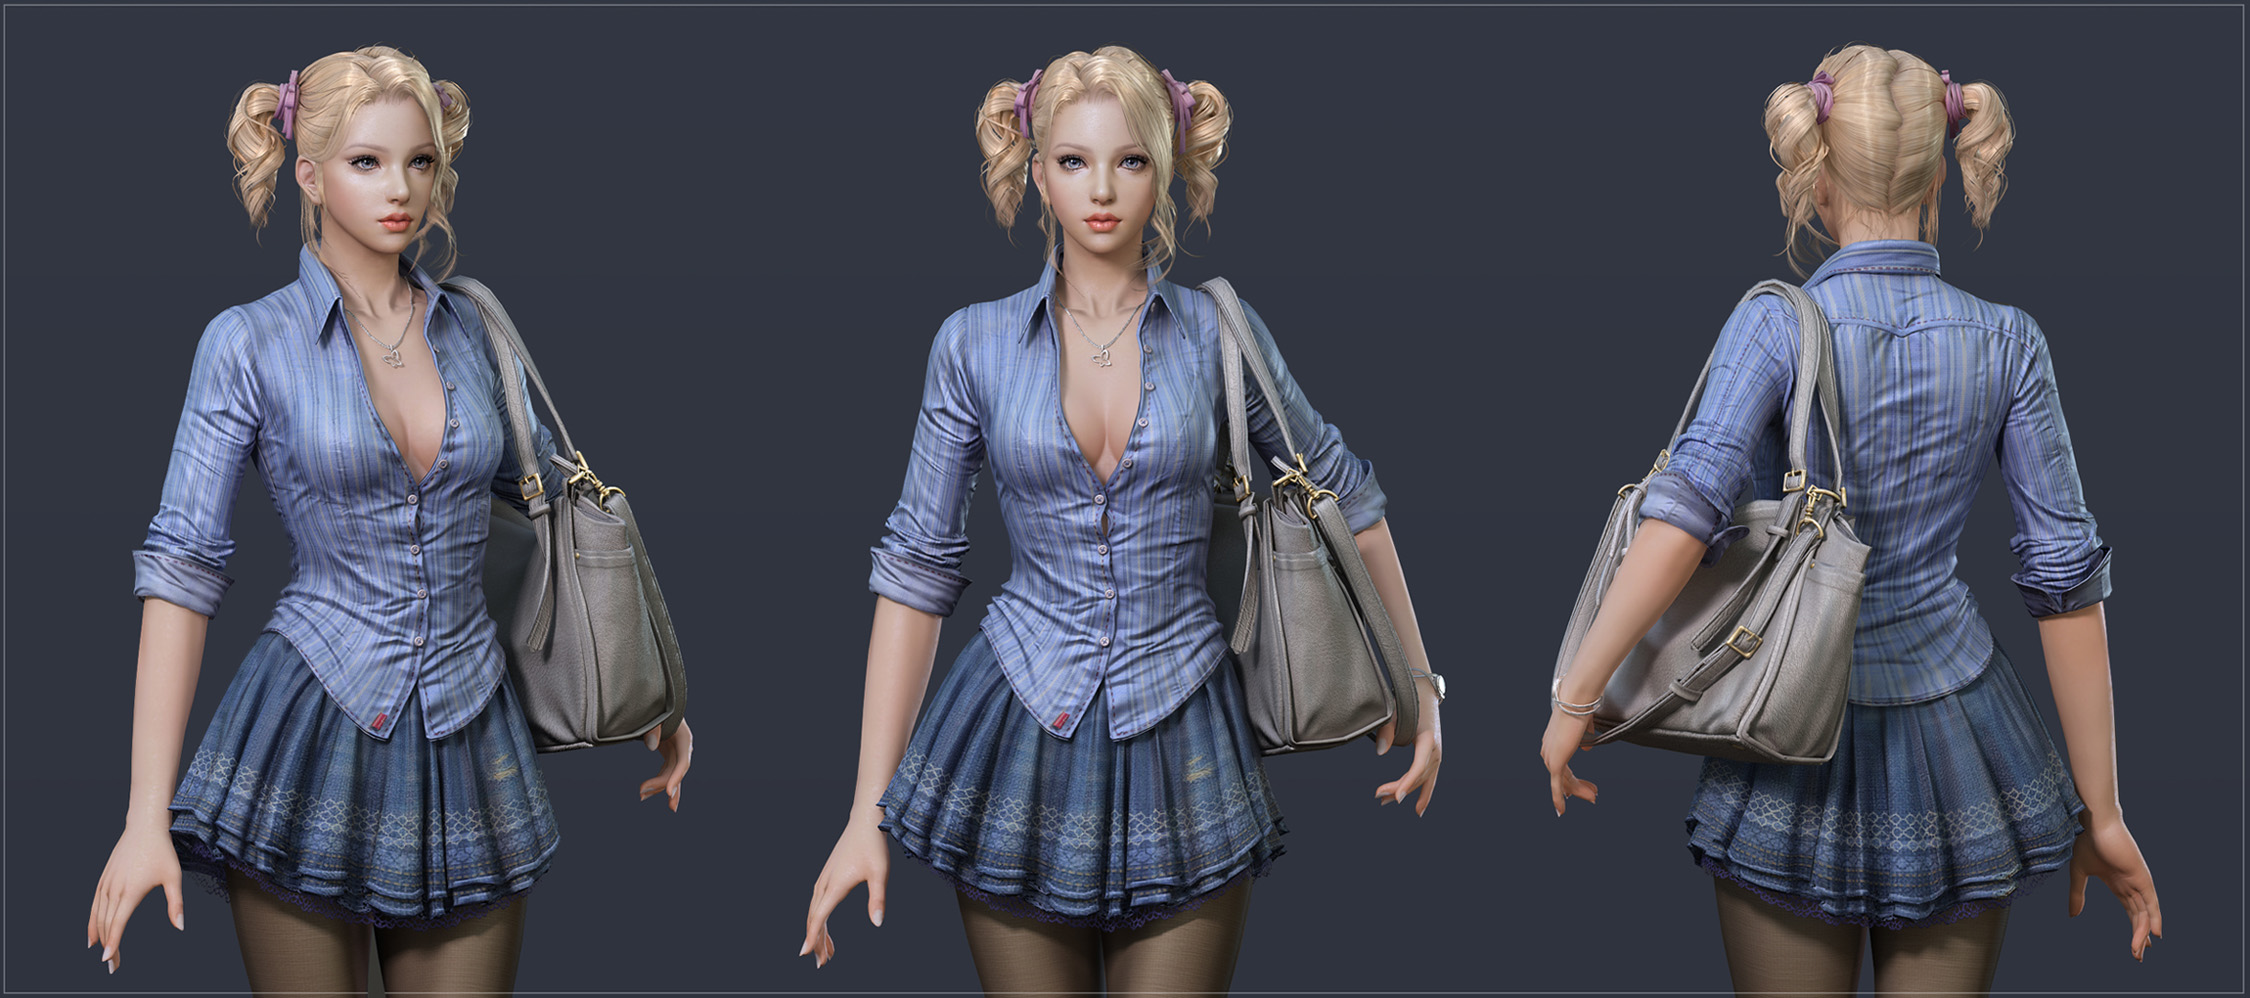 3d model of blonde - photo #39